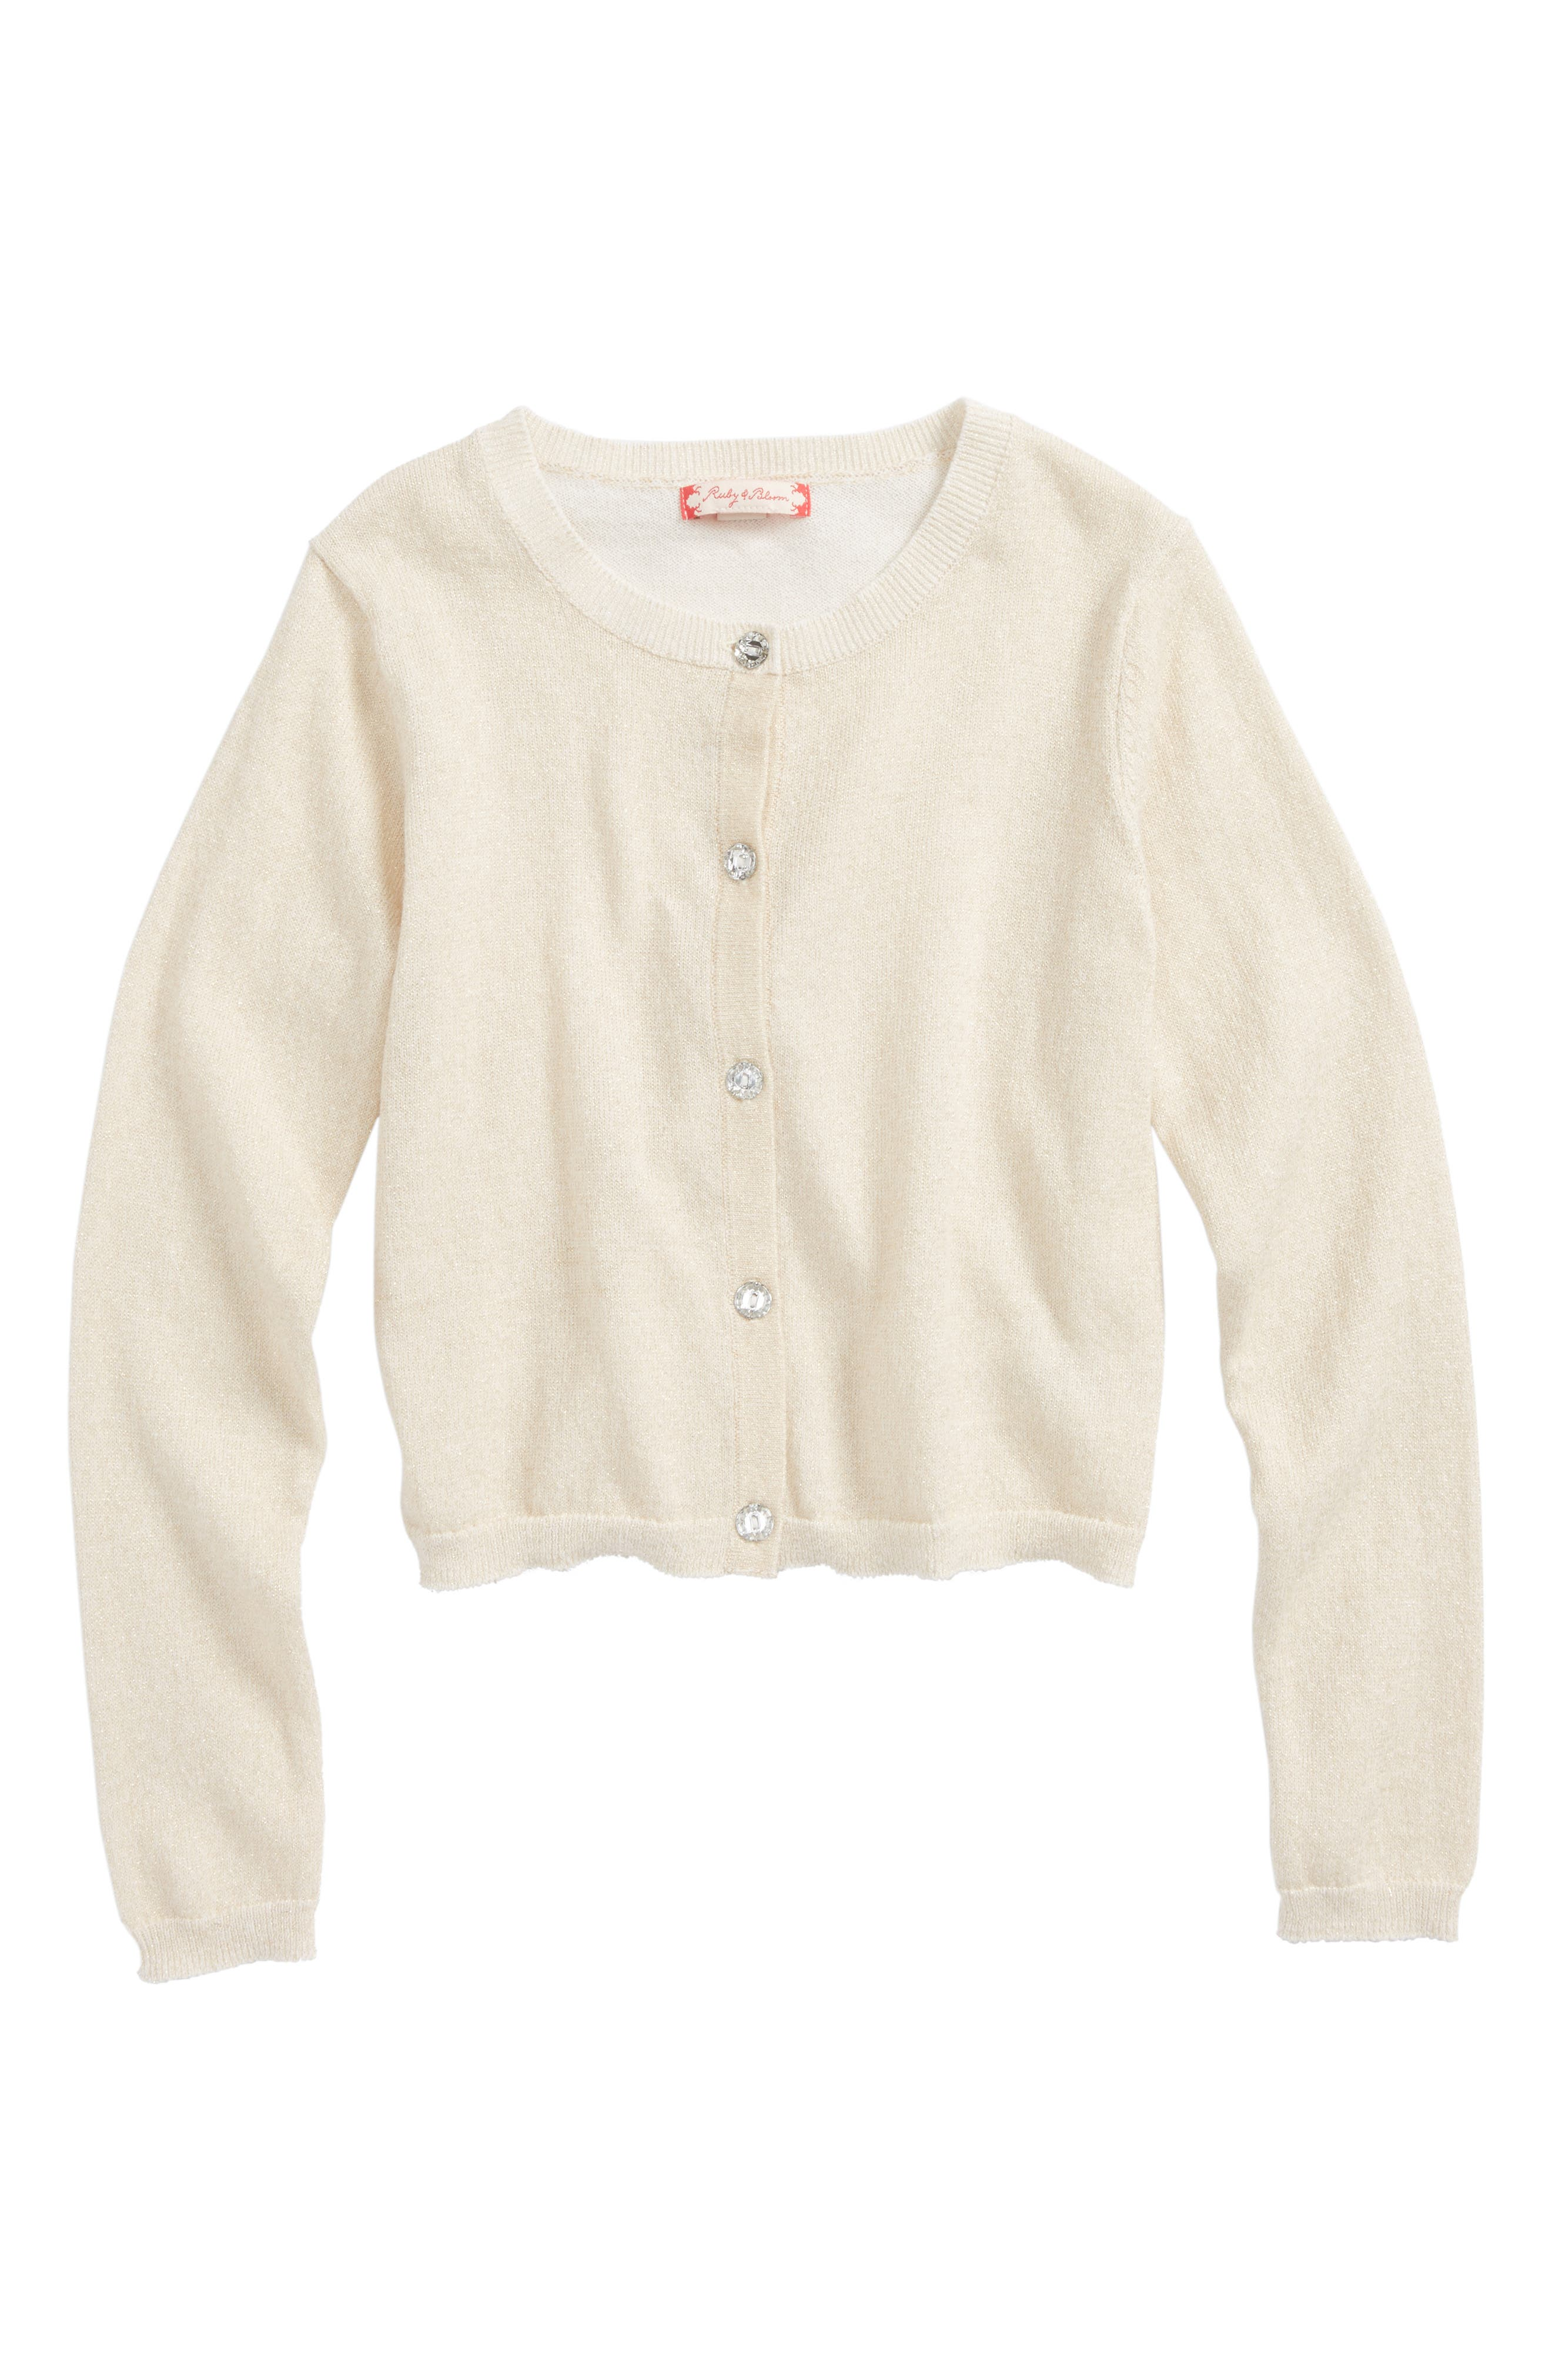 Ruby & Bloom Shimmer Cardigan (Toddler Girls, Little Girls & Big Girls)